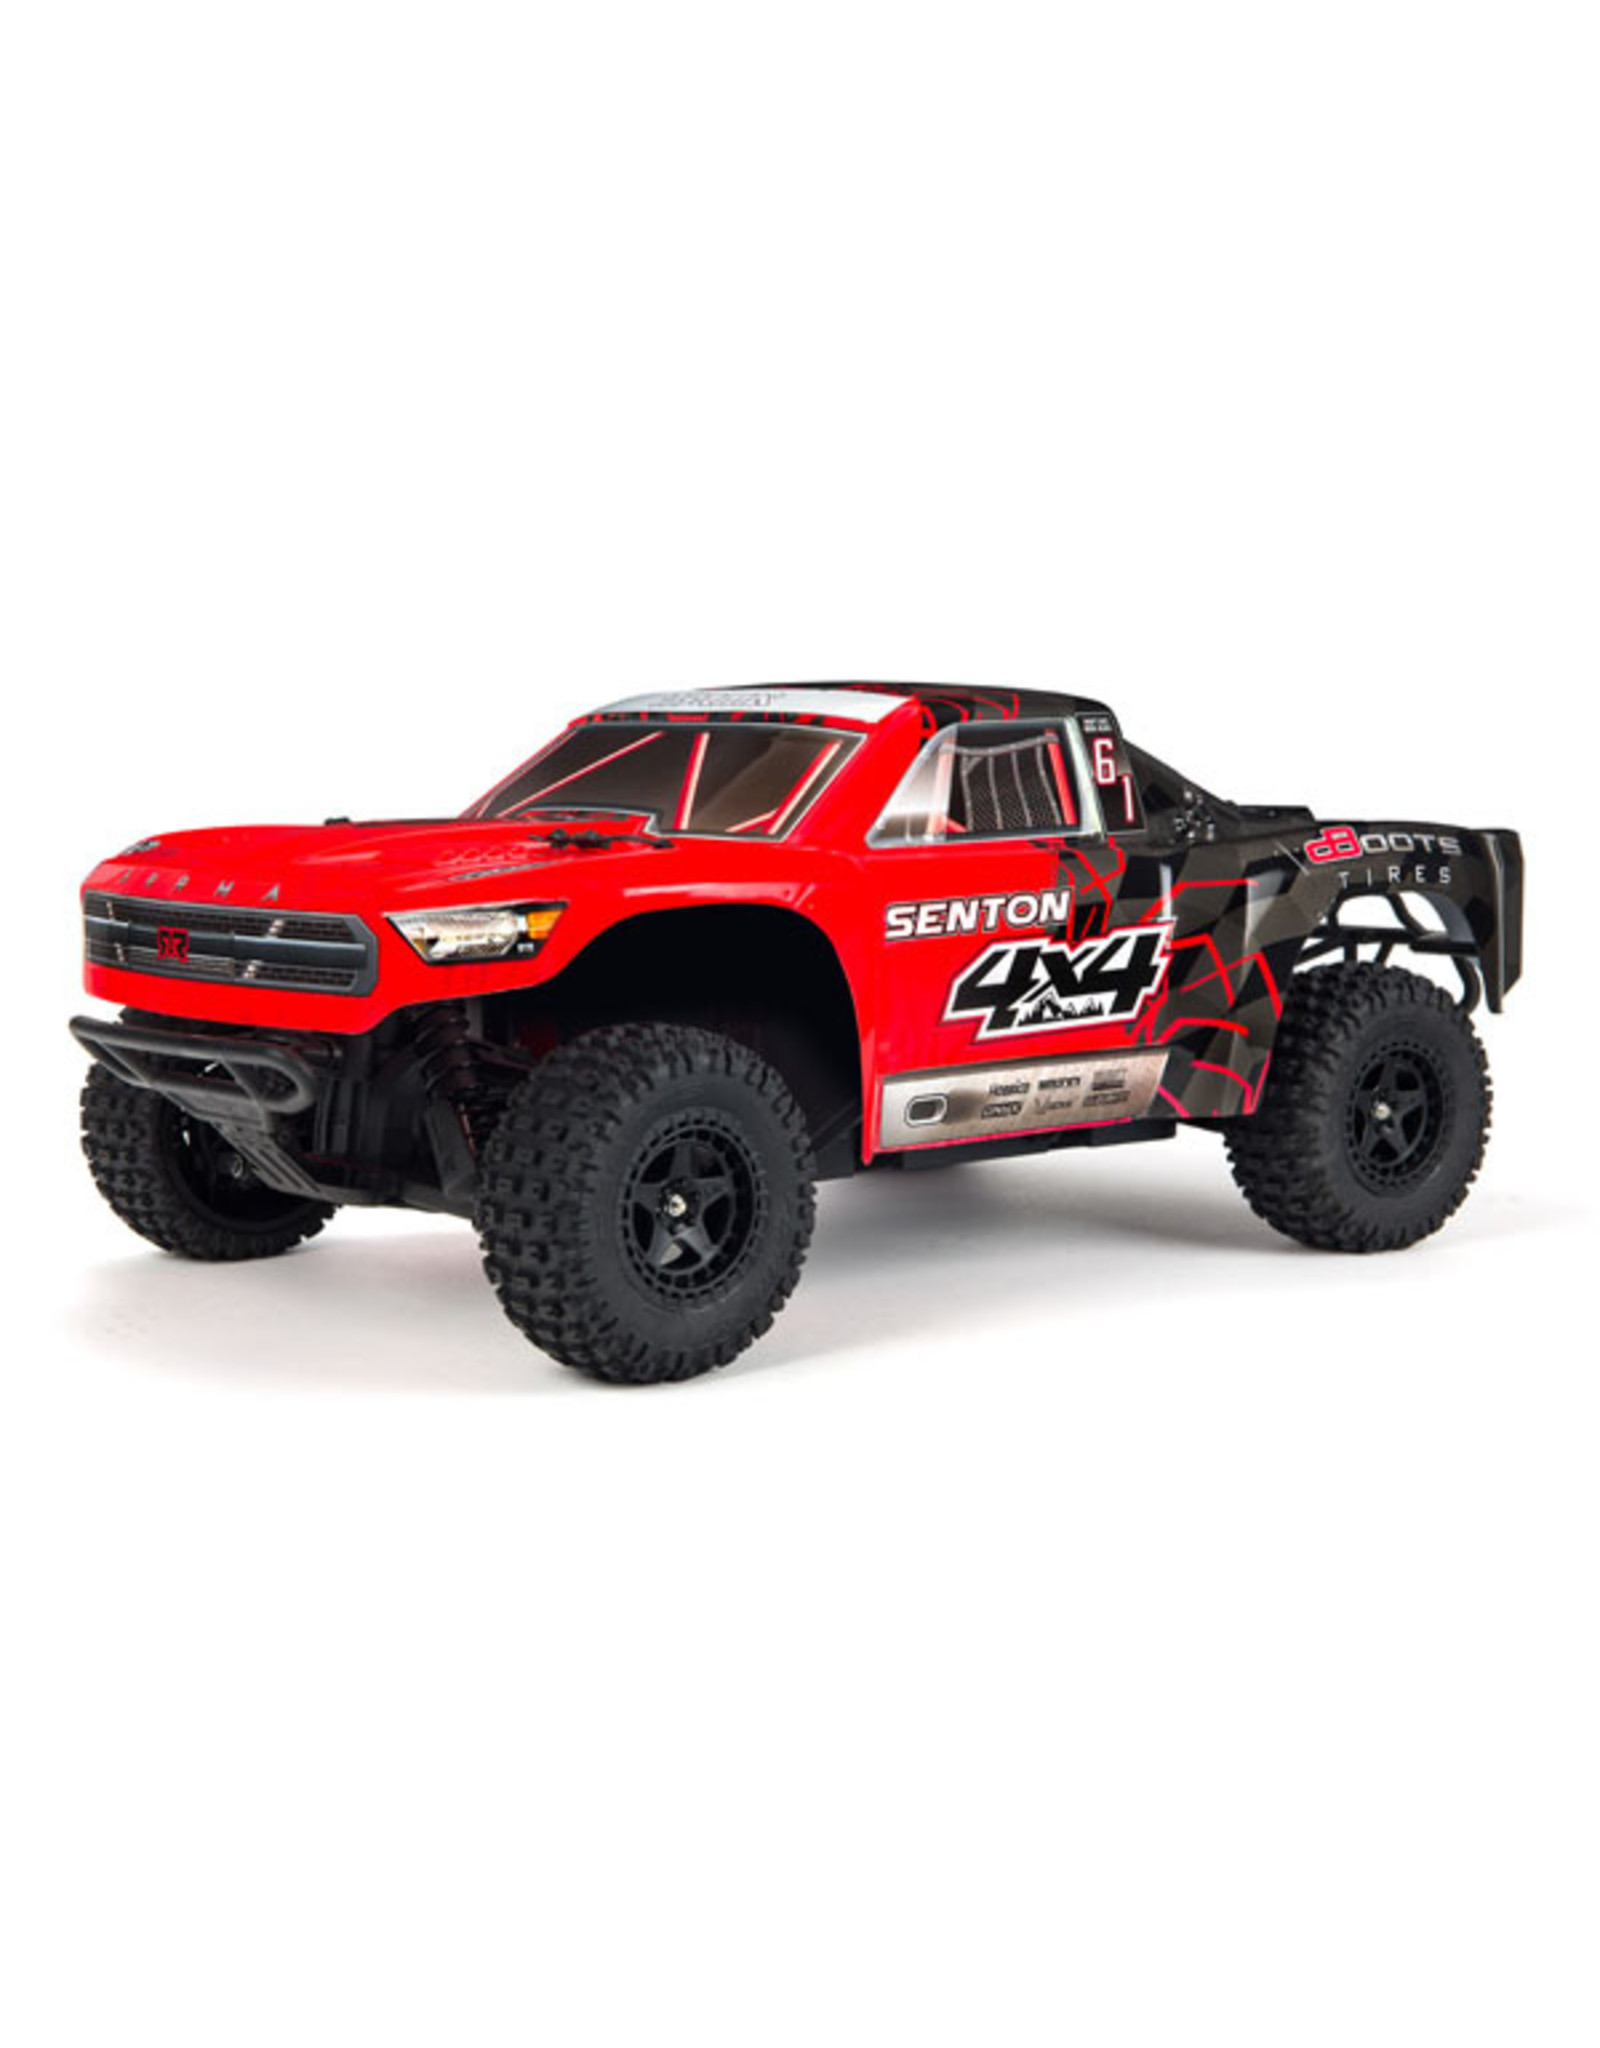 Arrma 1/10 SENTON 4x4 Mega SC Brushed Truck RTR, Red/Black (AR102715T1)